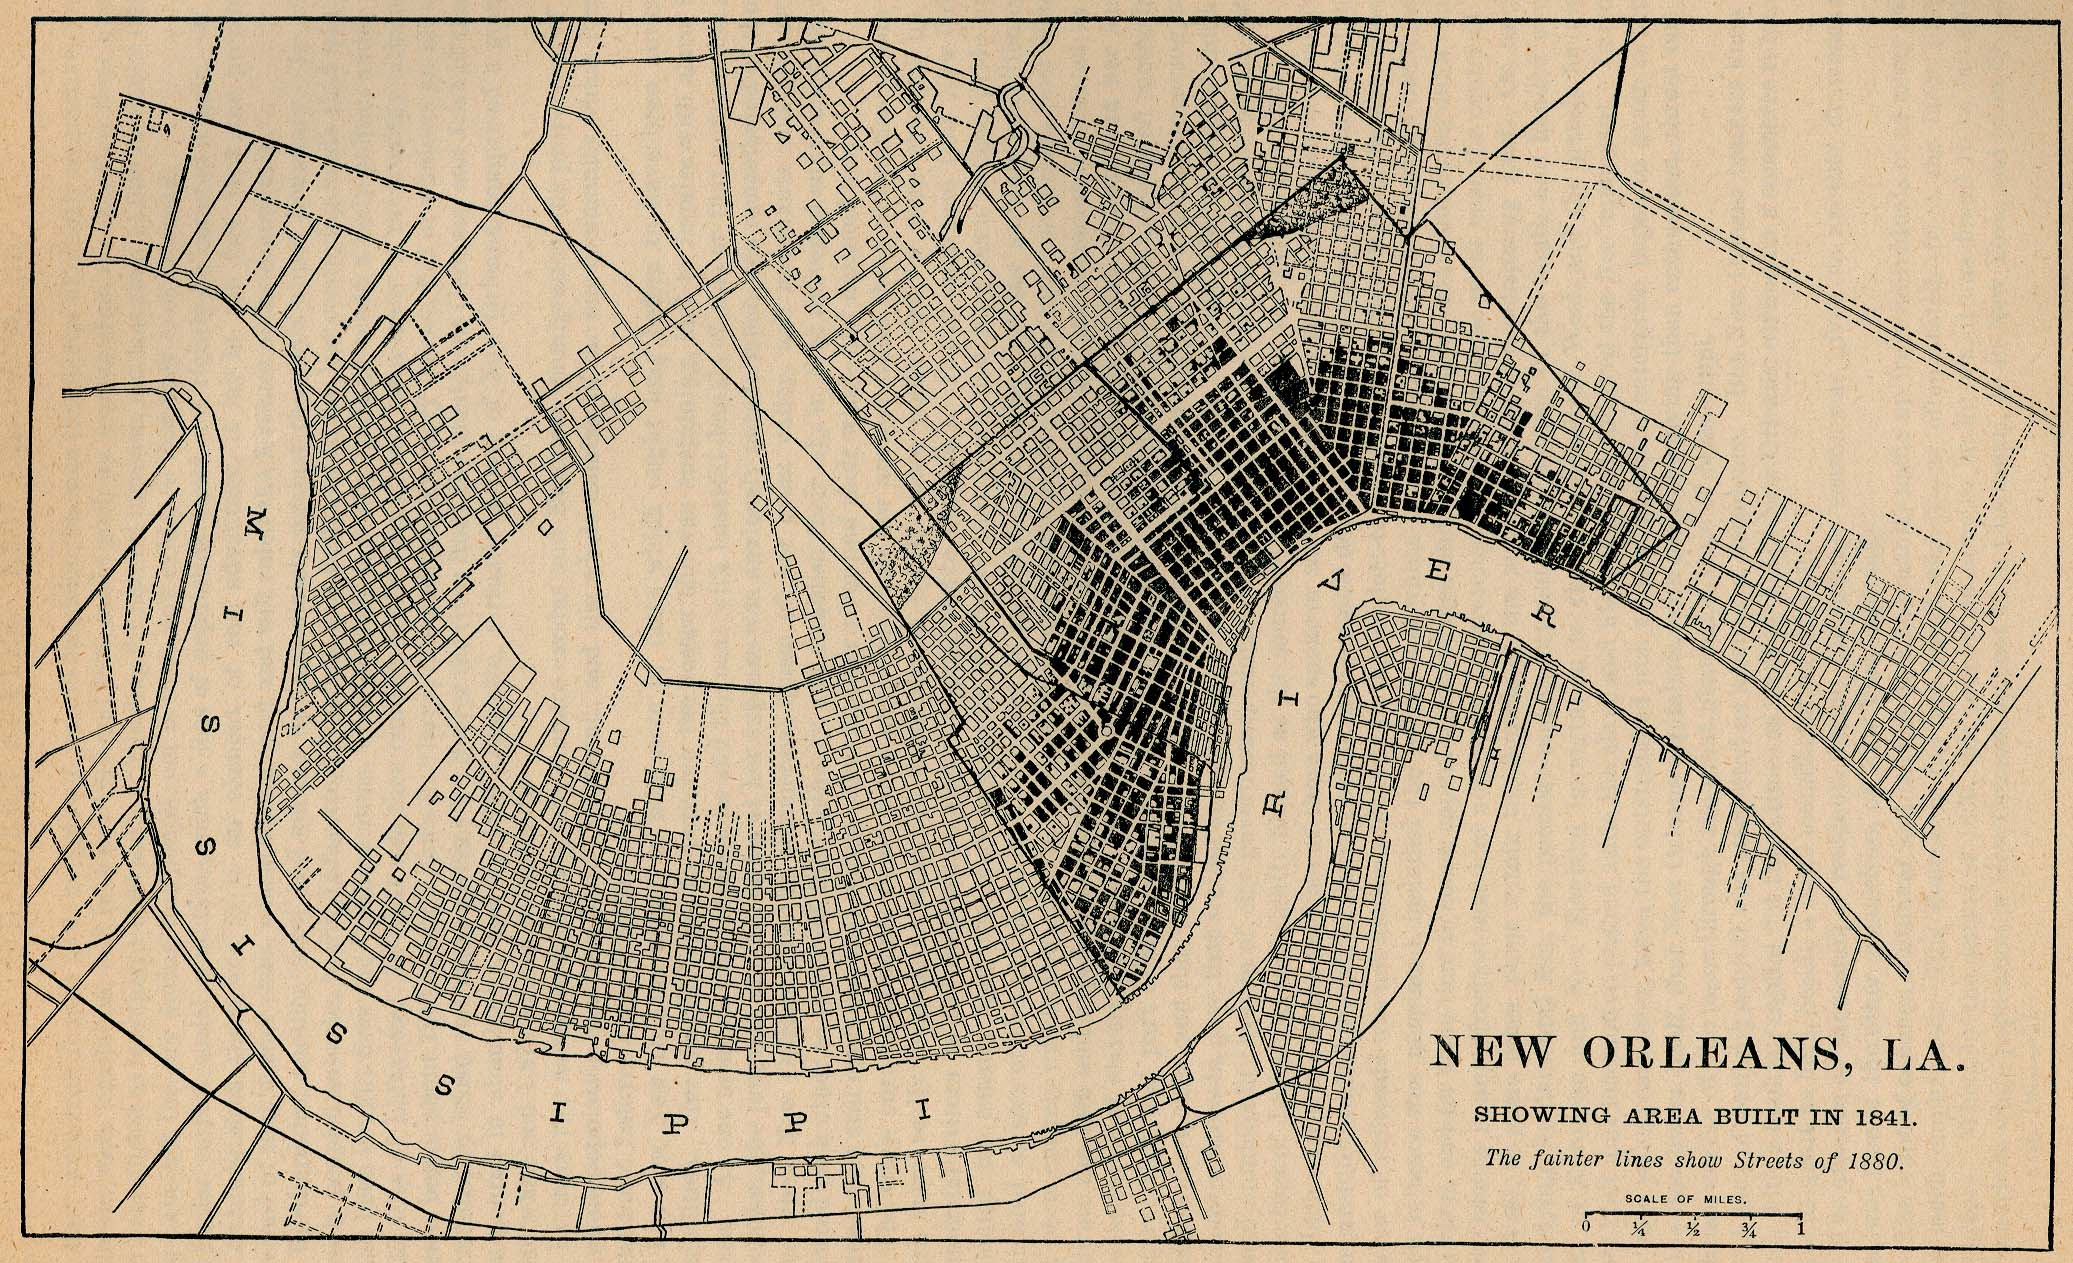 New Orleans City Map, Louisiana, United States 1841